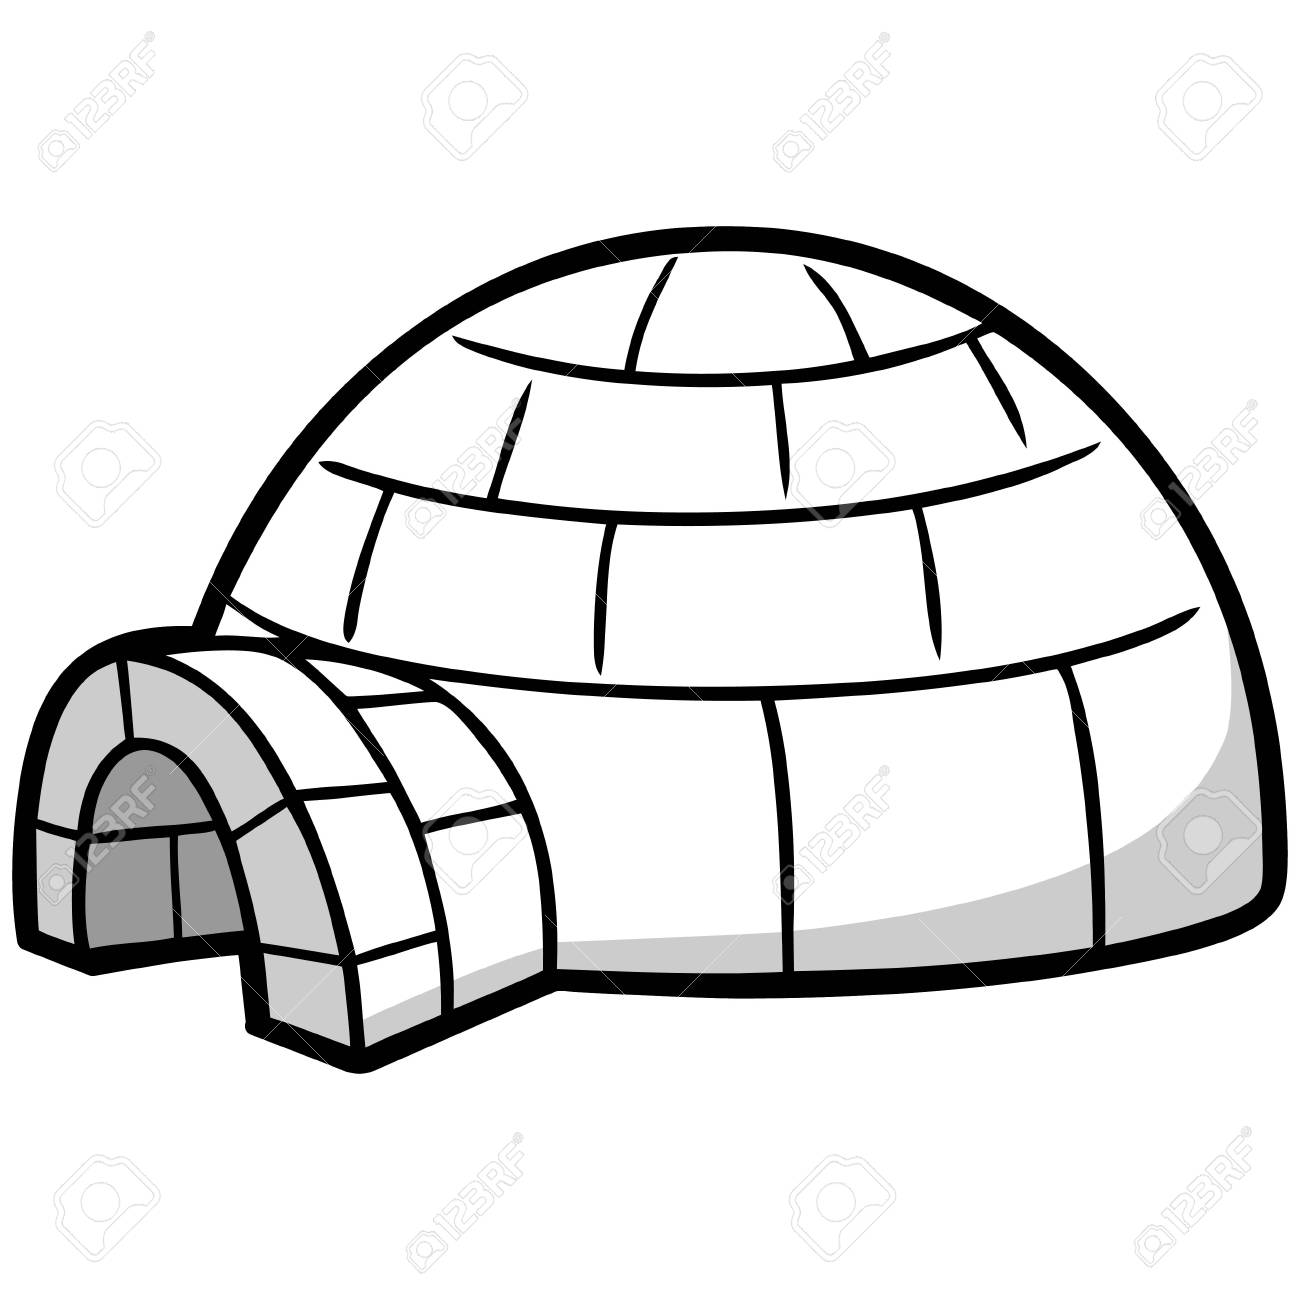 Clipart igloo graphic library 101+ Igloo Clipart | ClipartLook graphic library